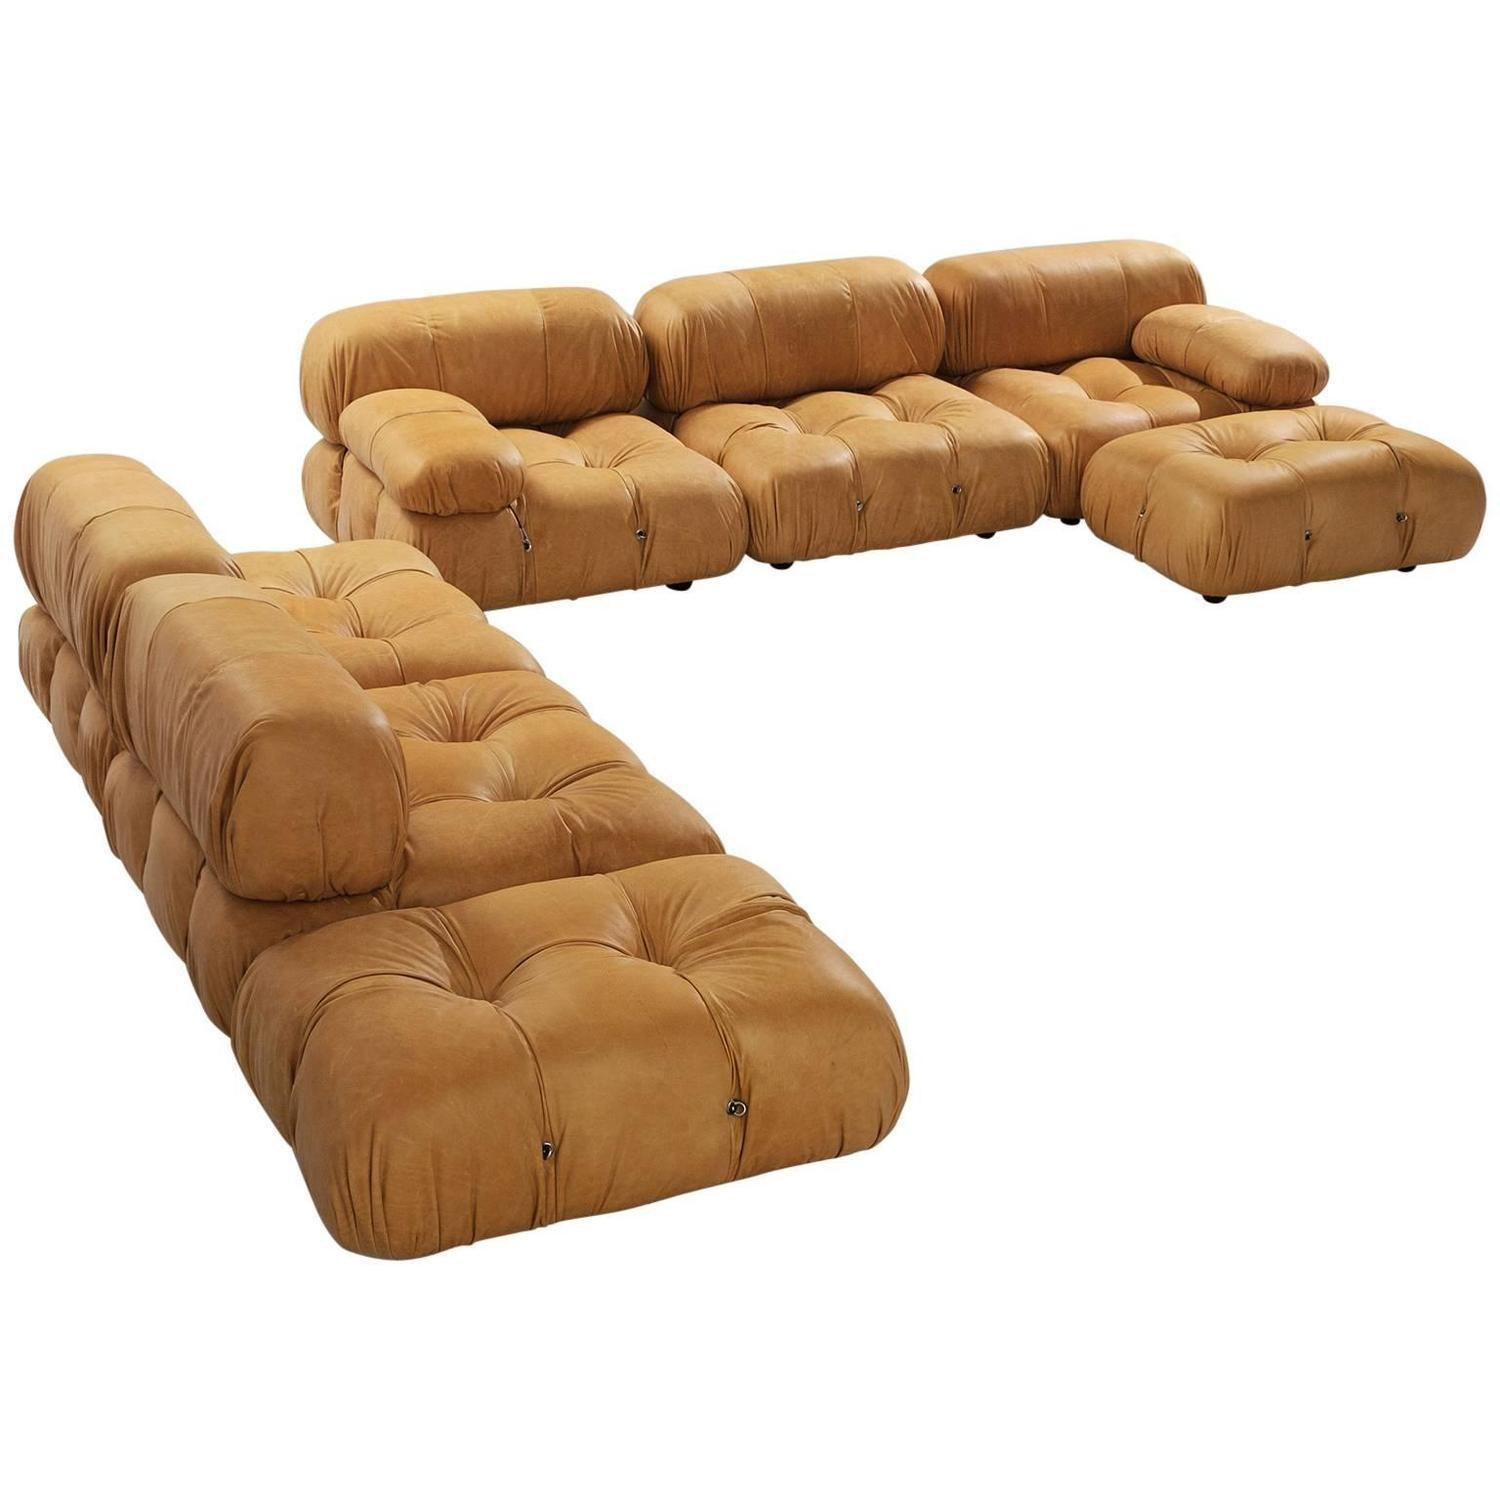 Mario Bellini Reupholstered 'camaleonda' Modular Sofa In Cognac With Modular Sofas (Image 6 of 20)